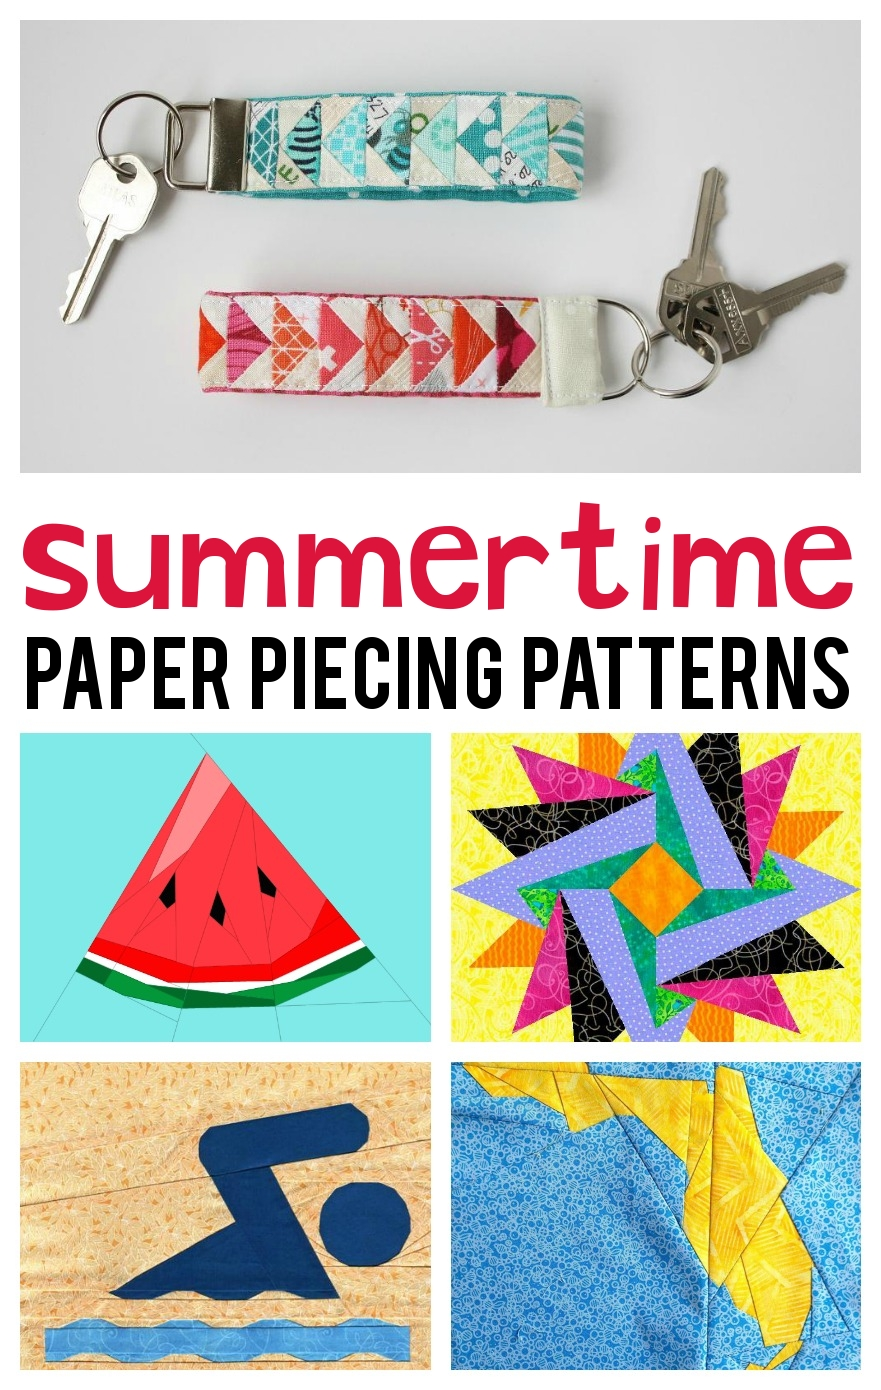 Summertime Paper Piecing Patterns